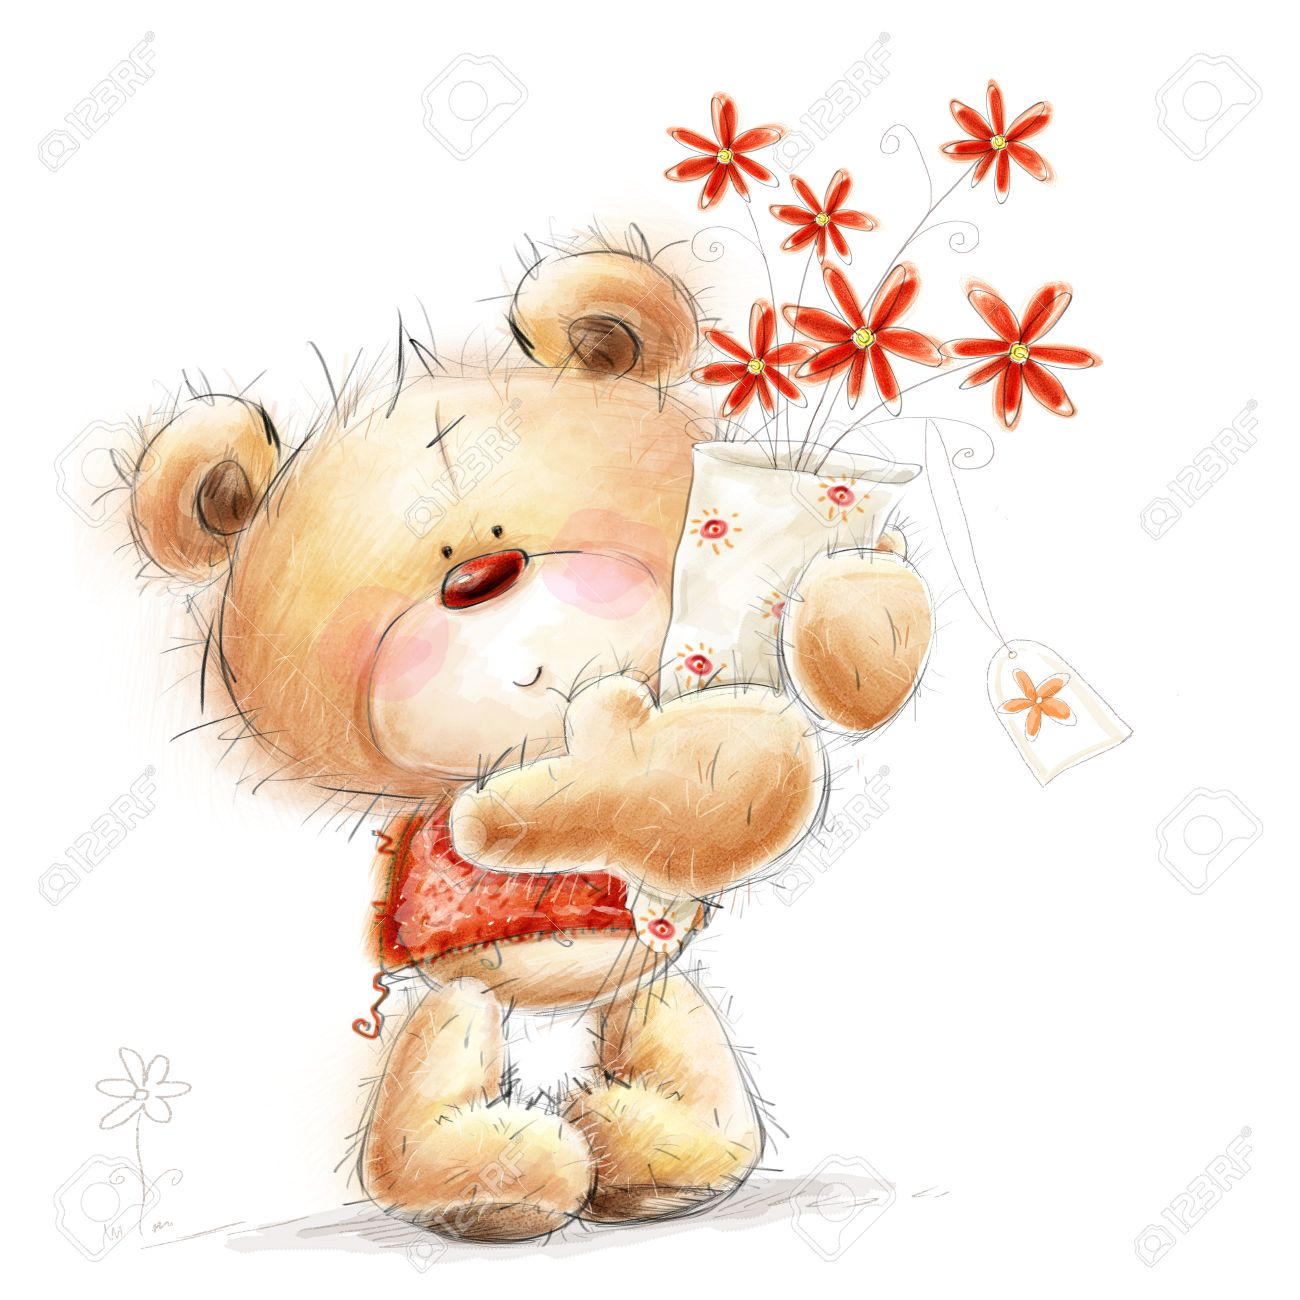 teddy bear images u0026 stock pictures royalty free teddy bear photos